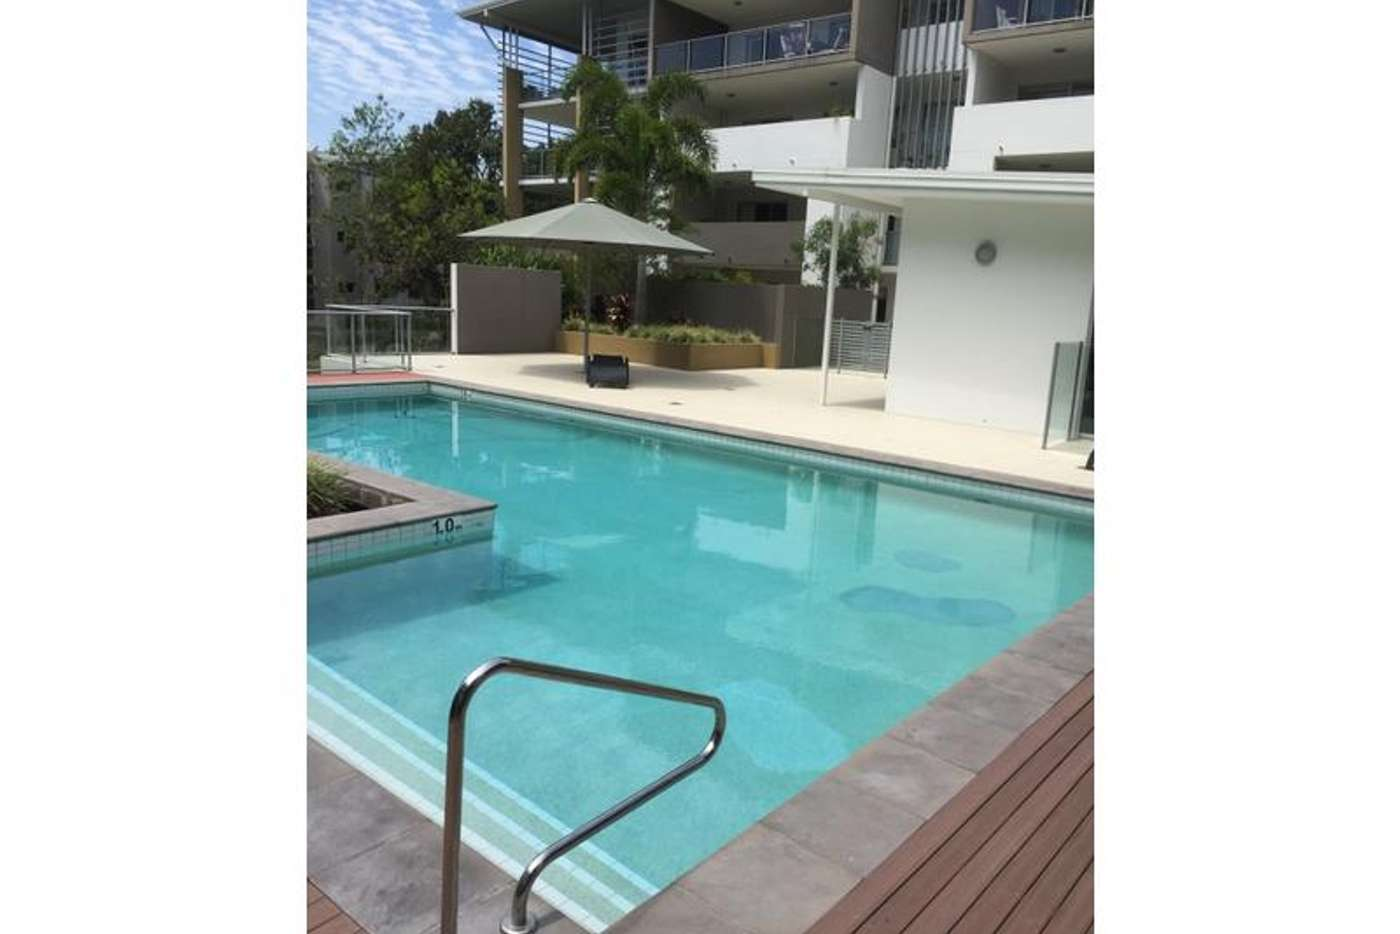 Main view of Homely apartment listing, 48/29 Alpha Street, Taringa QLD 4068